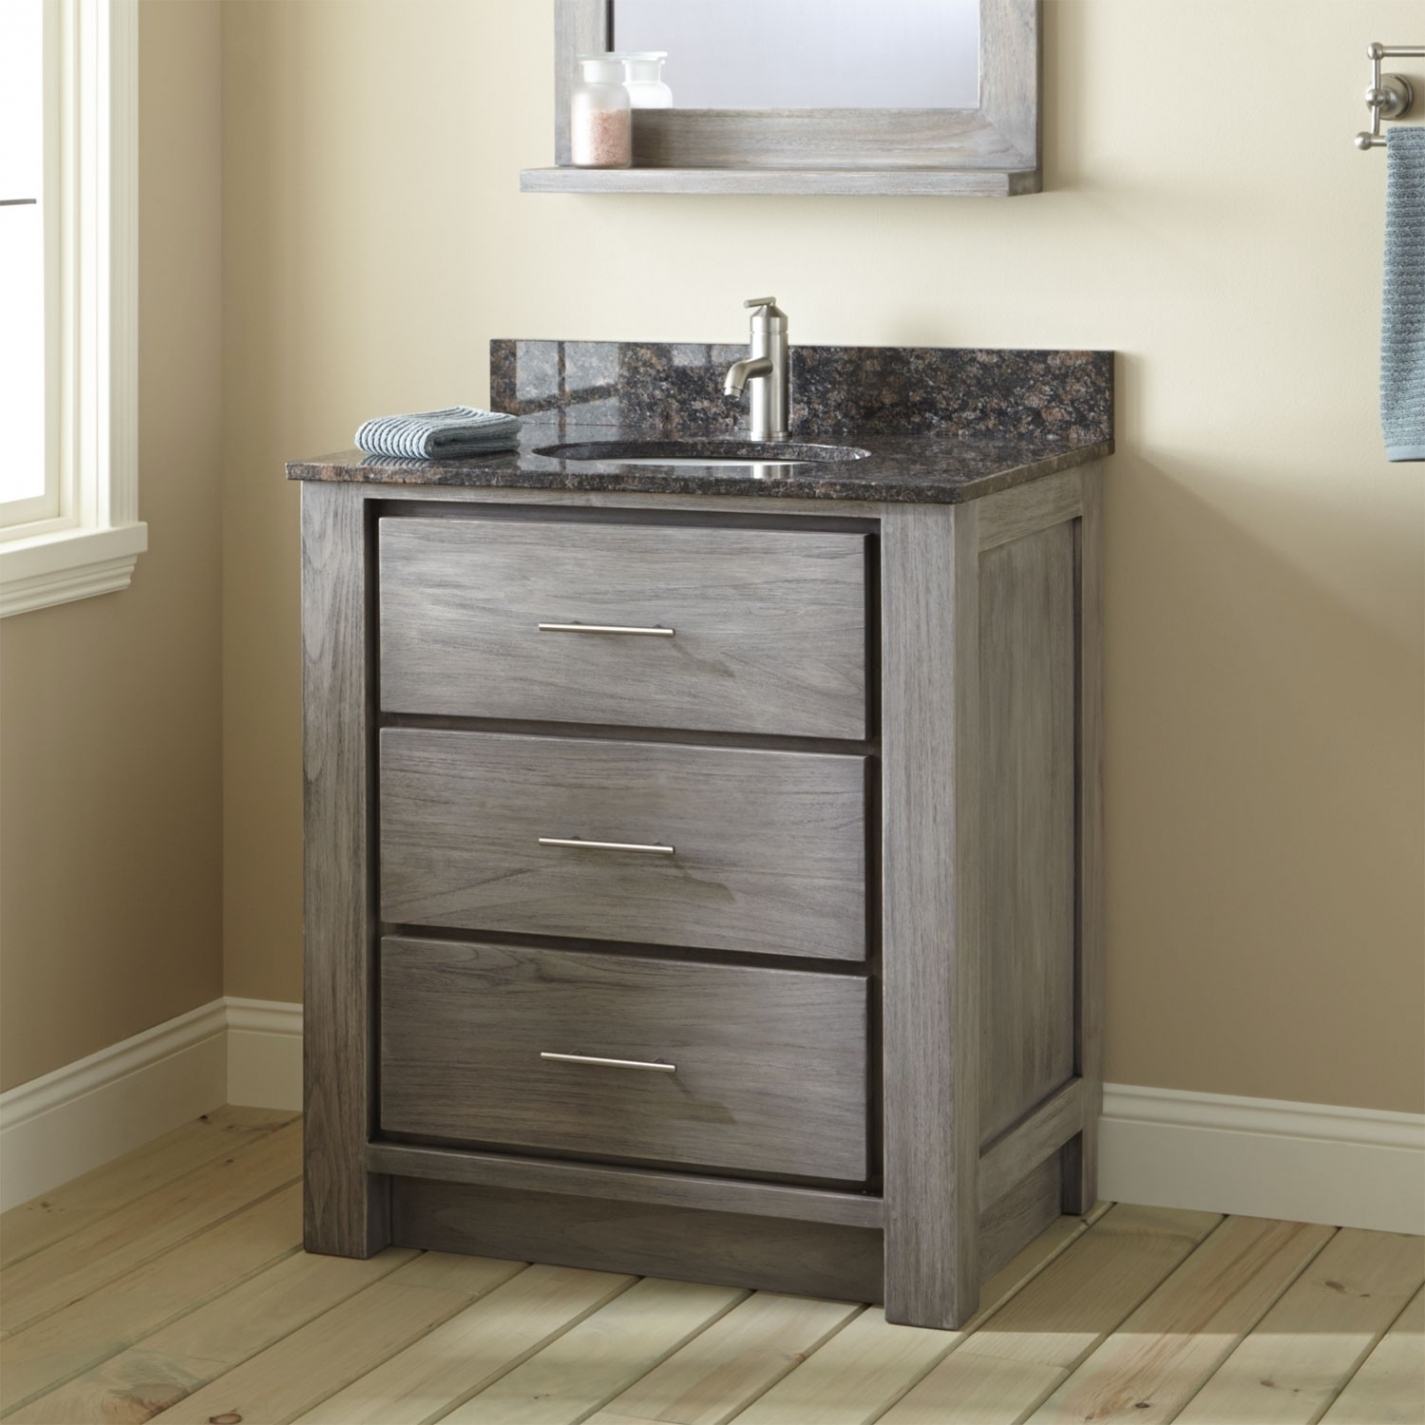 Small Bathroom Vanity With Drawers